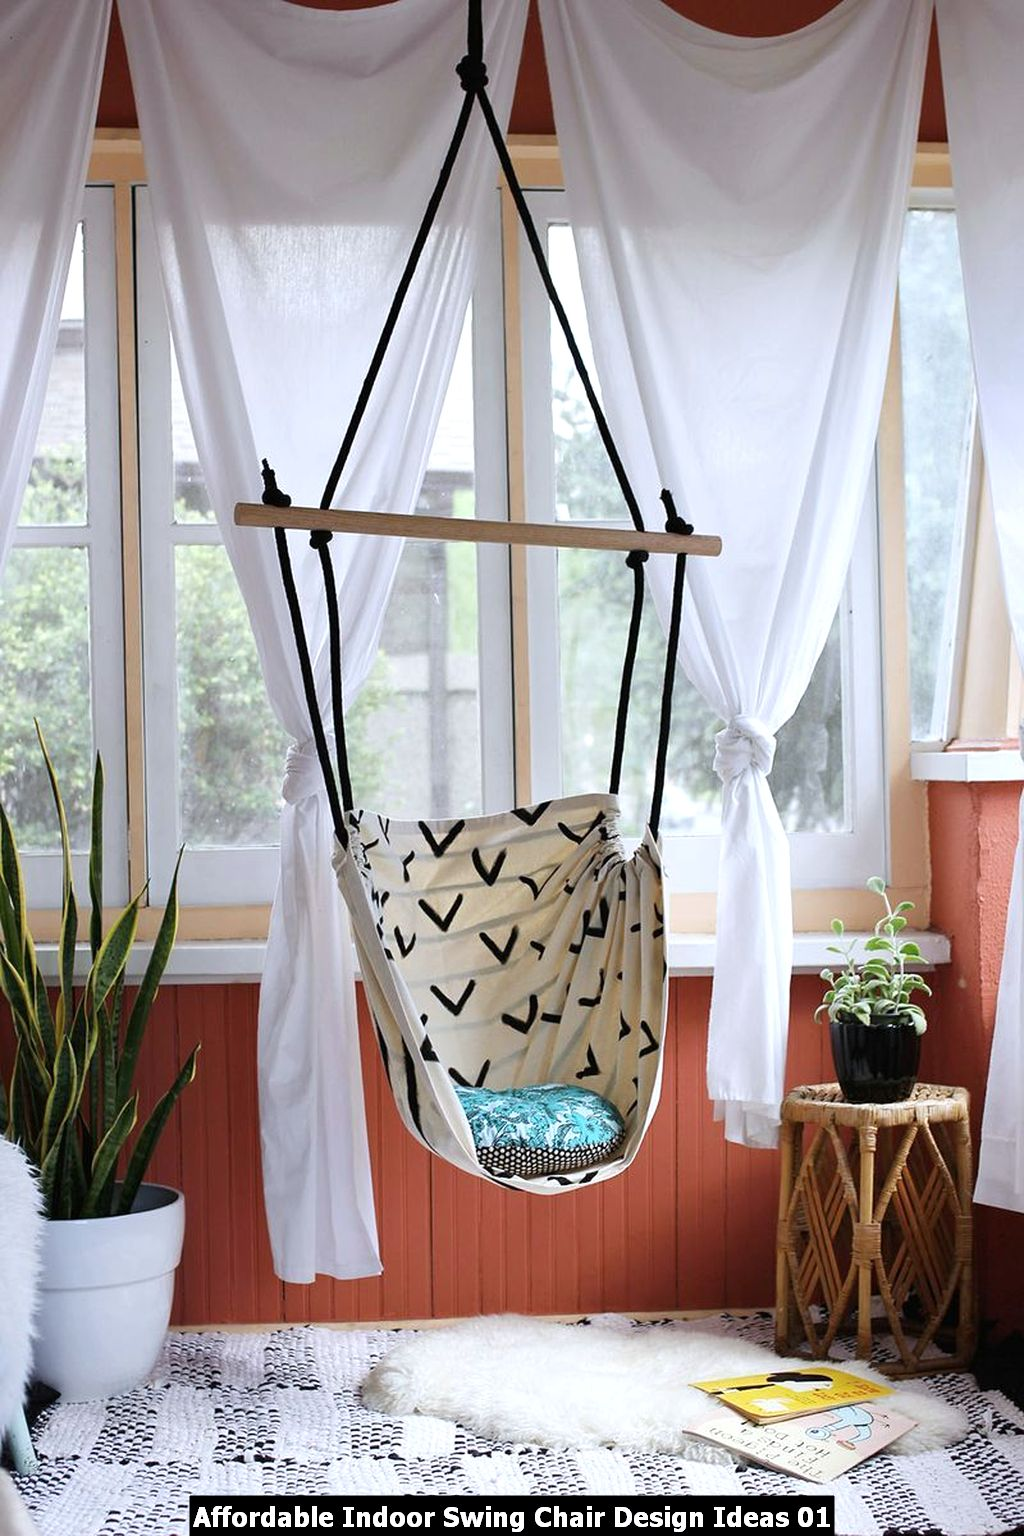 Affordable Indoor Swing Chair Design Ideas 01